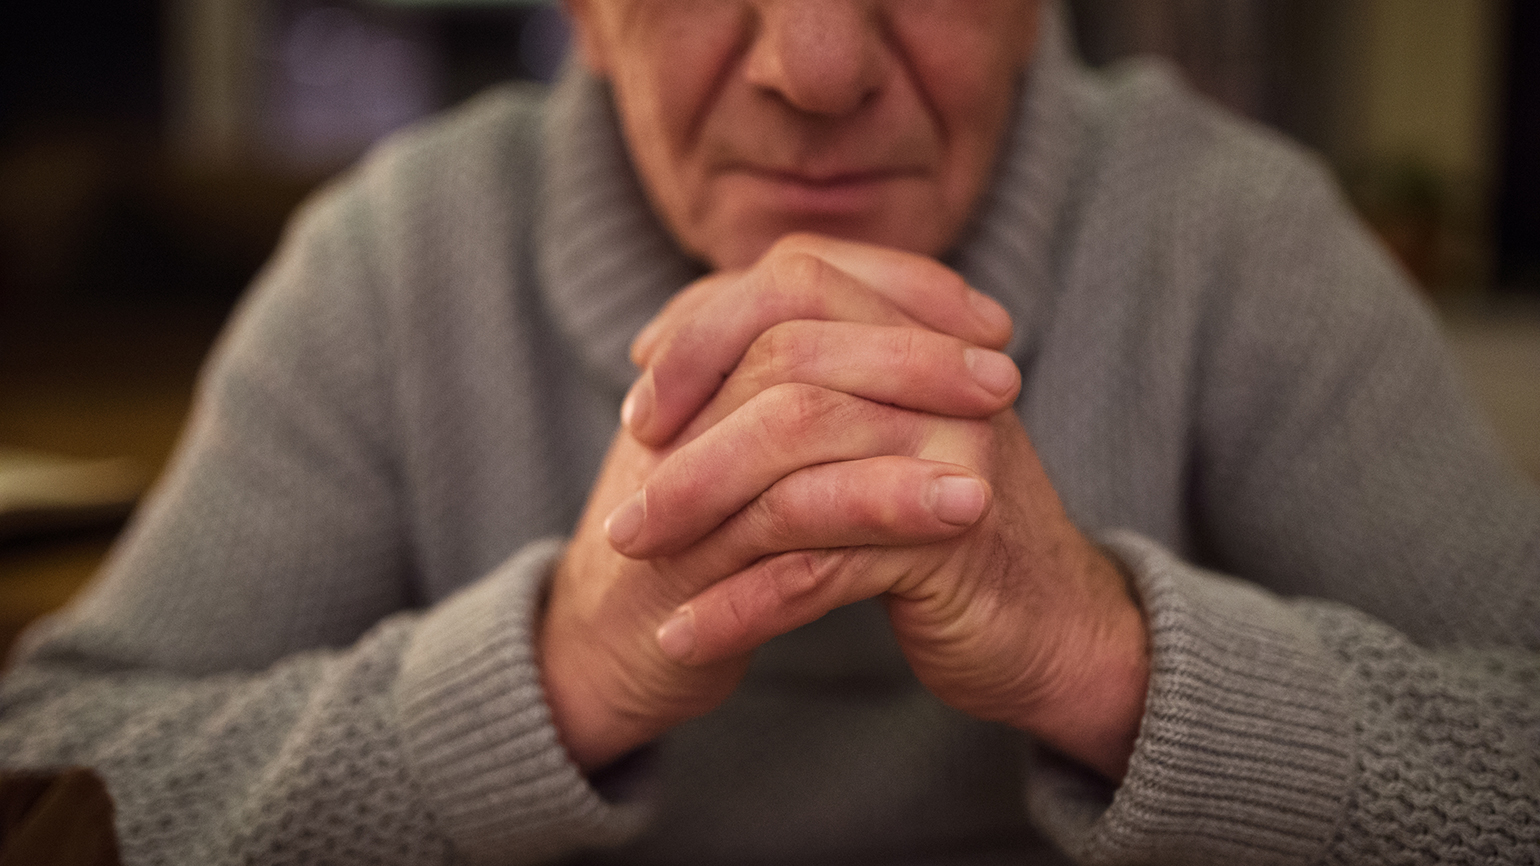 A senior man clasps his hands in prayer